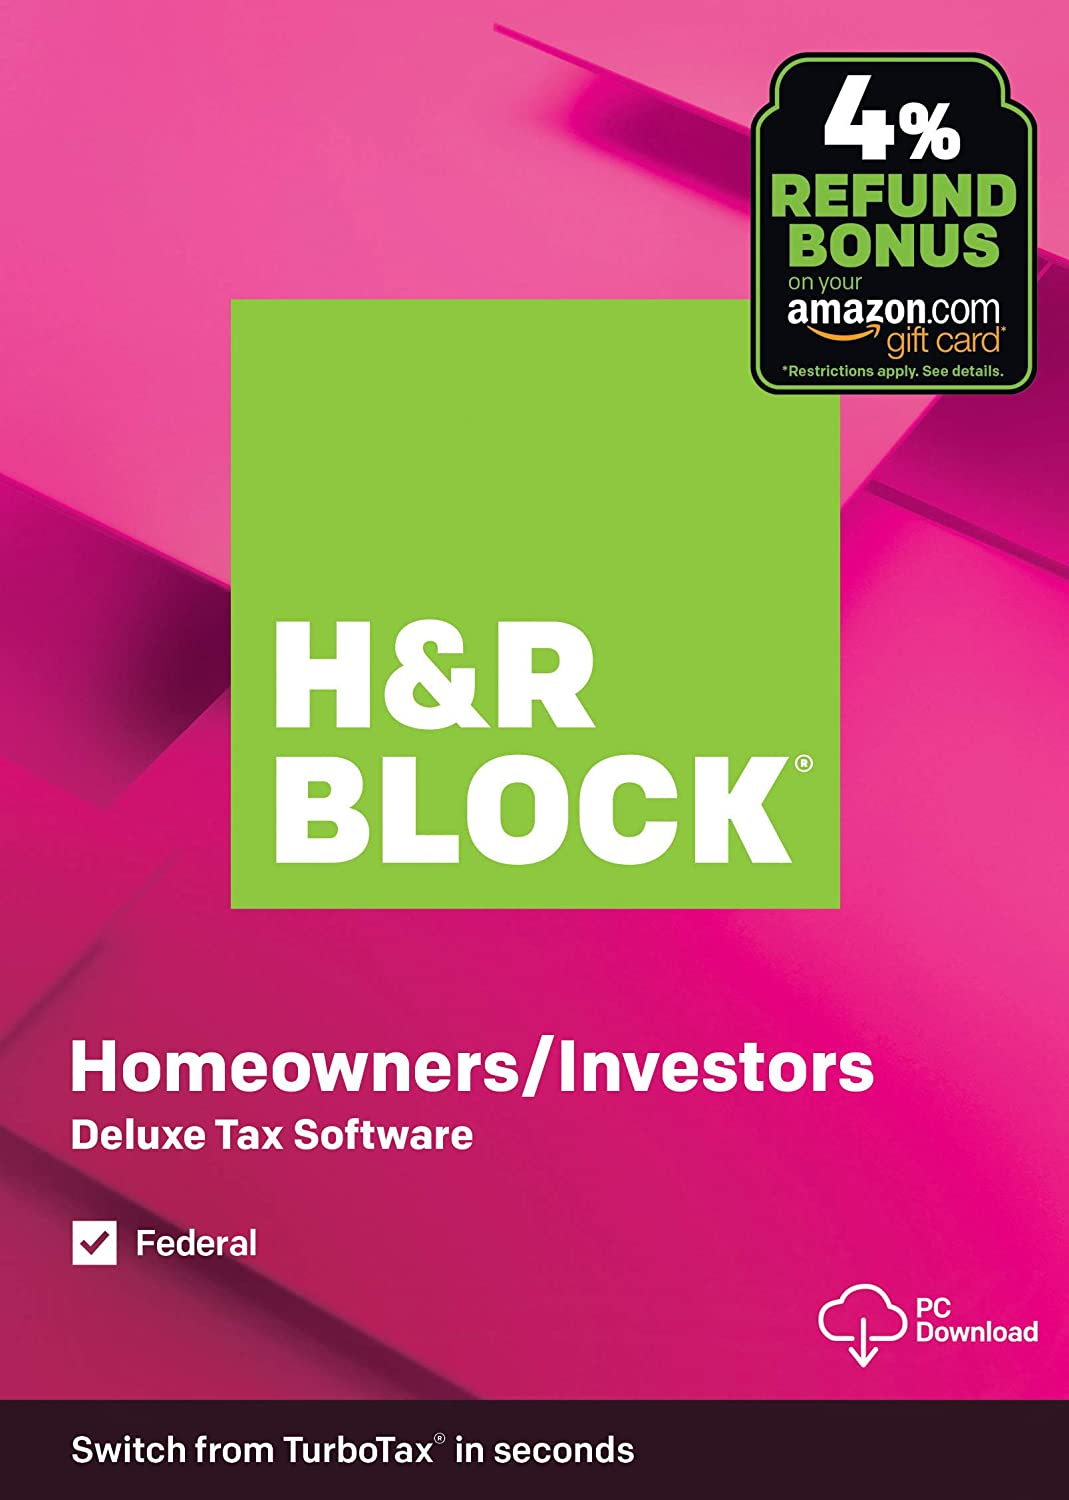 H&R Block Tax Software Deluxe 2019 [Federal Only] with 4% Refund Bonus Offer [Amazon Exclusive] [PC Download]